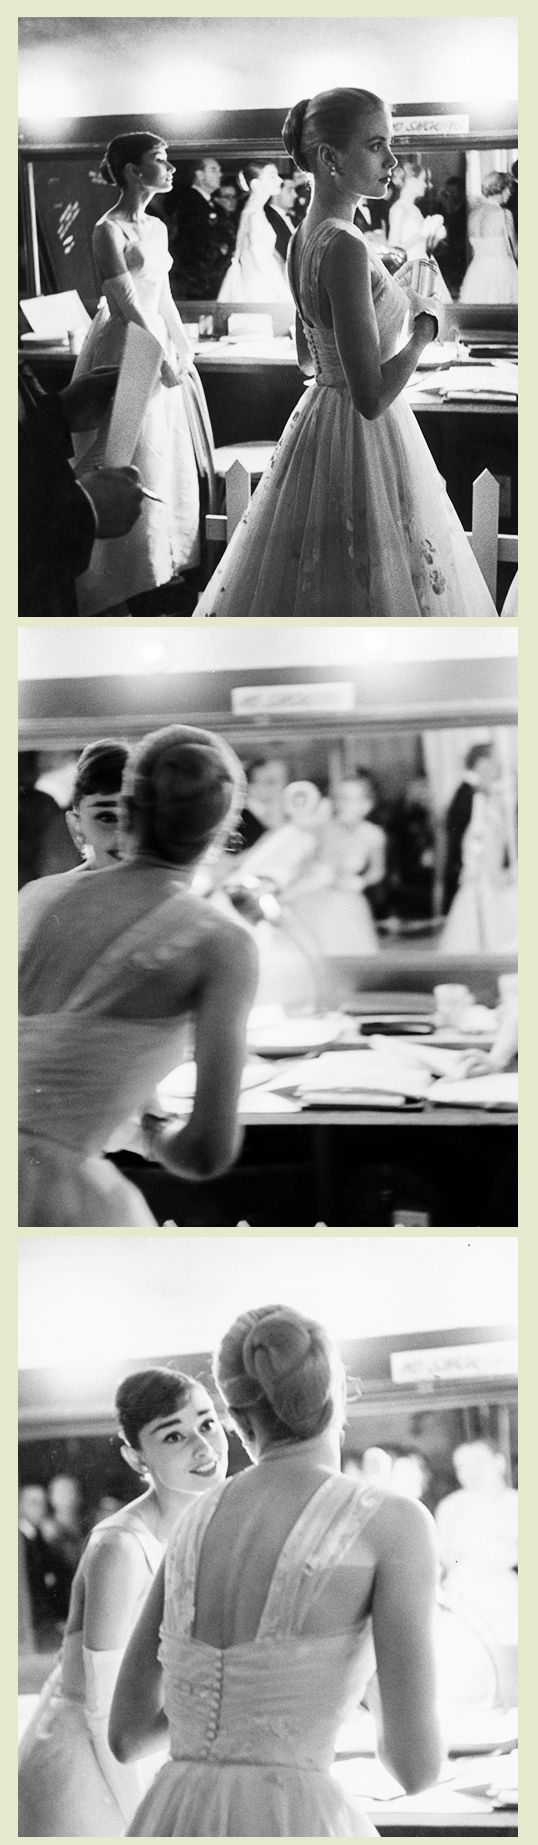 Audrey Hepburn and Grace Kelly waiting backstage at the RKO Pantages Theatre, during the 28th Annual Academy Awards, 1956.